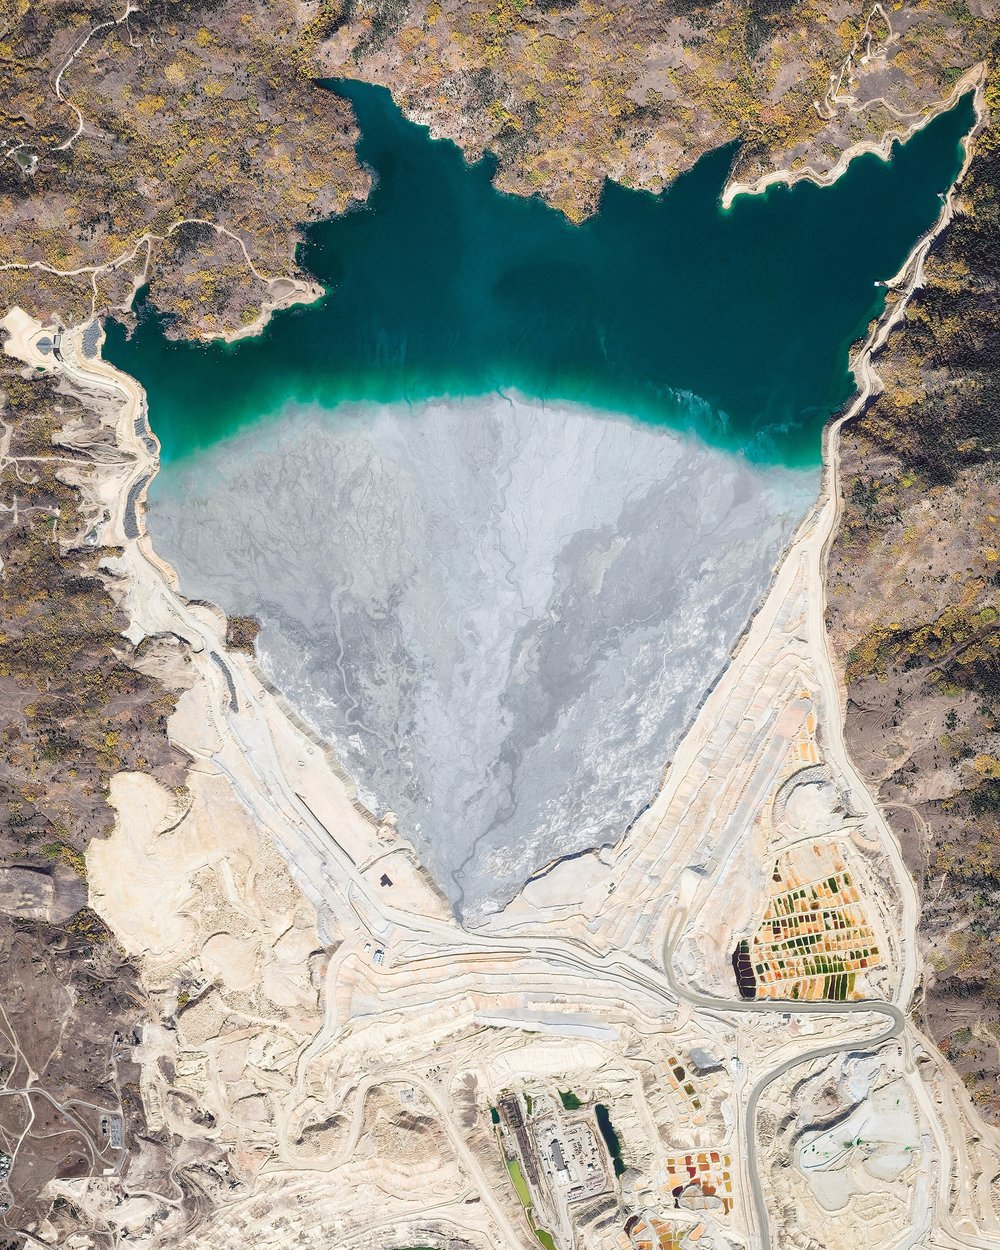 """The Yankee Doodle Tailings Pond in Butte, Montana, is used as a dumping site for leftover materials from nearby copper mines. It covers an area of roughly 2.5 square miles (6.5 sq. km) and is contained by a 650-foot (200 m) tall earthen dam — one of the largest of its kind in the United States. To help offset the acidity of mine waste, lime rock is added to create a non-acidic tailings slurry.  46°02'37.3""""N, 112°30'23.2""""W  Source imagery: DigitalGlobe"""